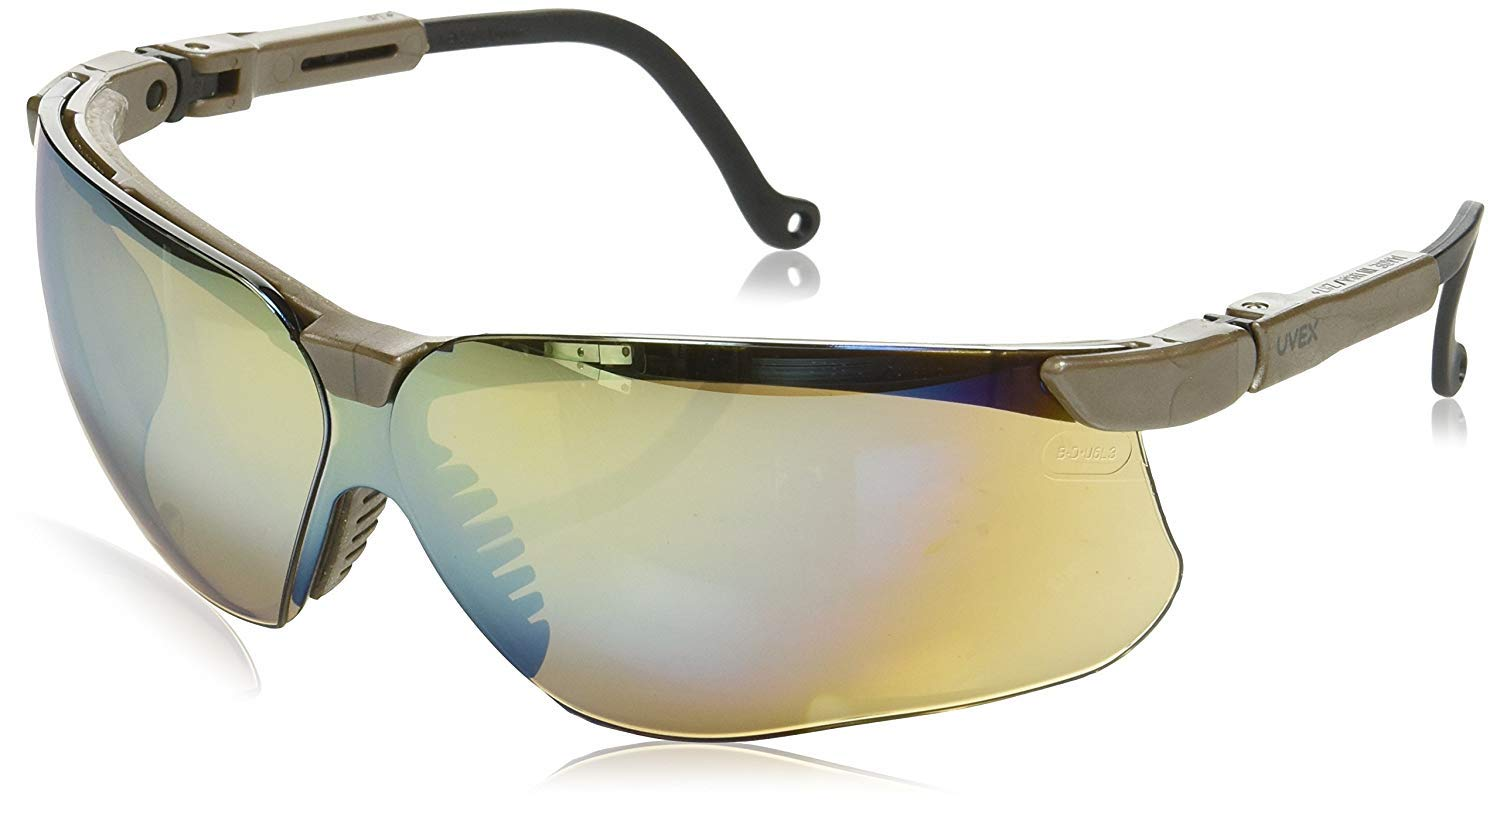 UVEX by Honeywell S3223 Uvex by Honeywell Genesis Safety Glasses with Uvextreme Anti-Fog Coating